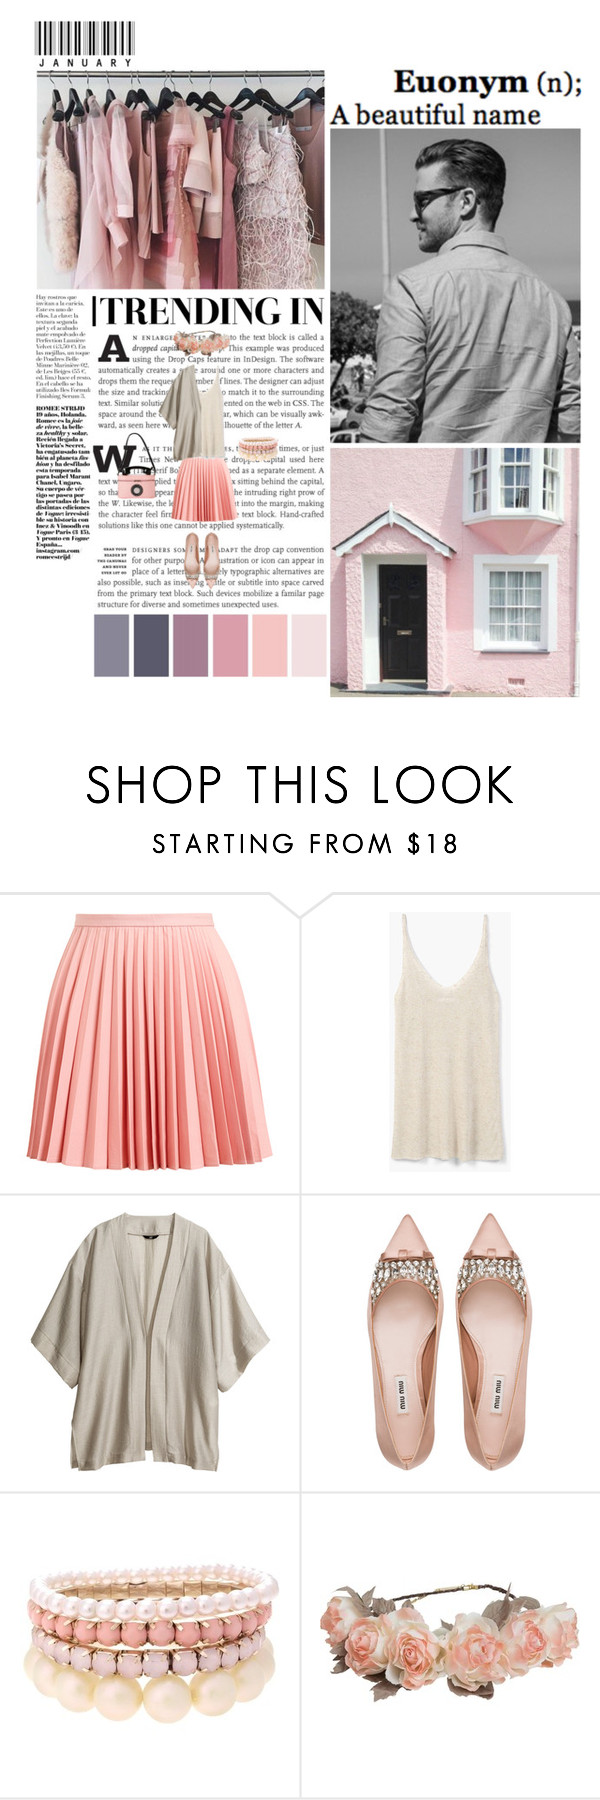 """Set #4964"" by miky94 ❤ liked on Polyvore featuring J.W. Anderson, MANGO, H&M, Miu Miu, Lipsy and Cult Gaia"